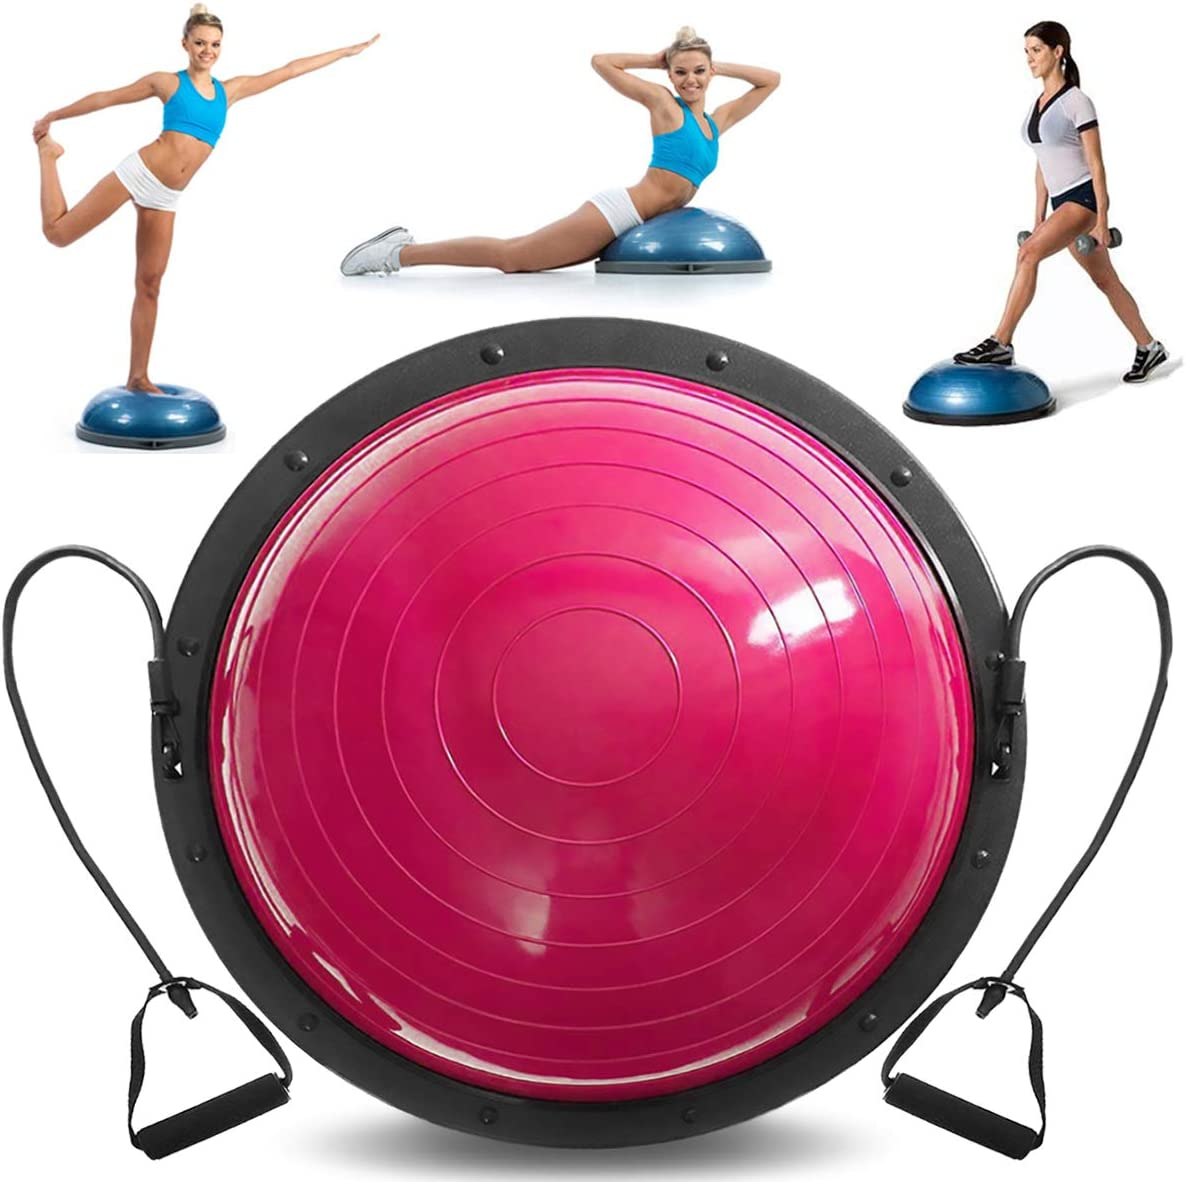 VEVOR Balance Trainer Ball 23 Inch Balance Trainer Blue Yoga Balance Ball Fitness Strength Exercise Workout with Resistance Bands and Pump Pink